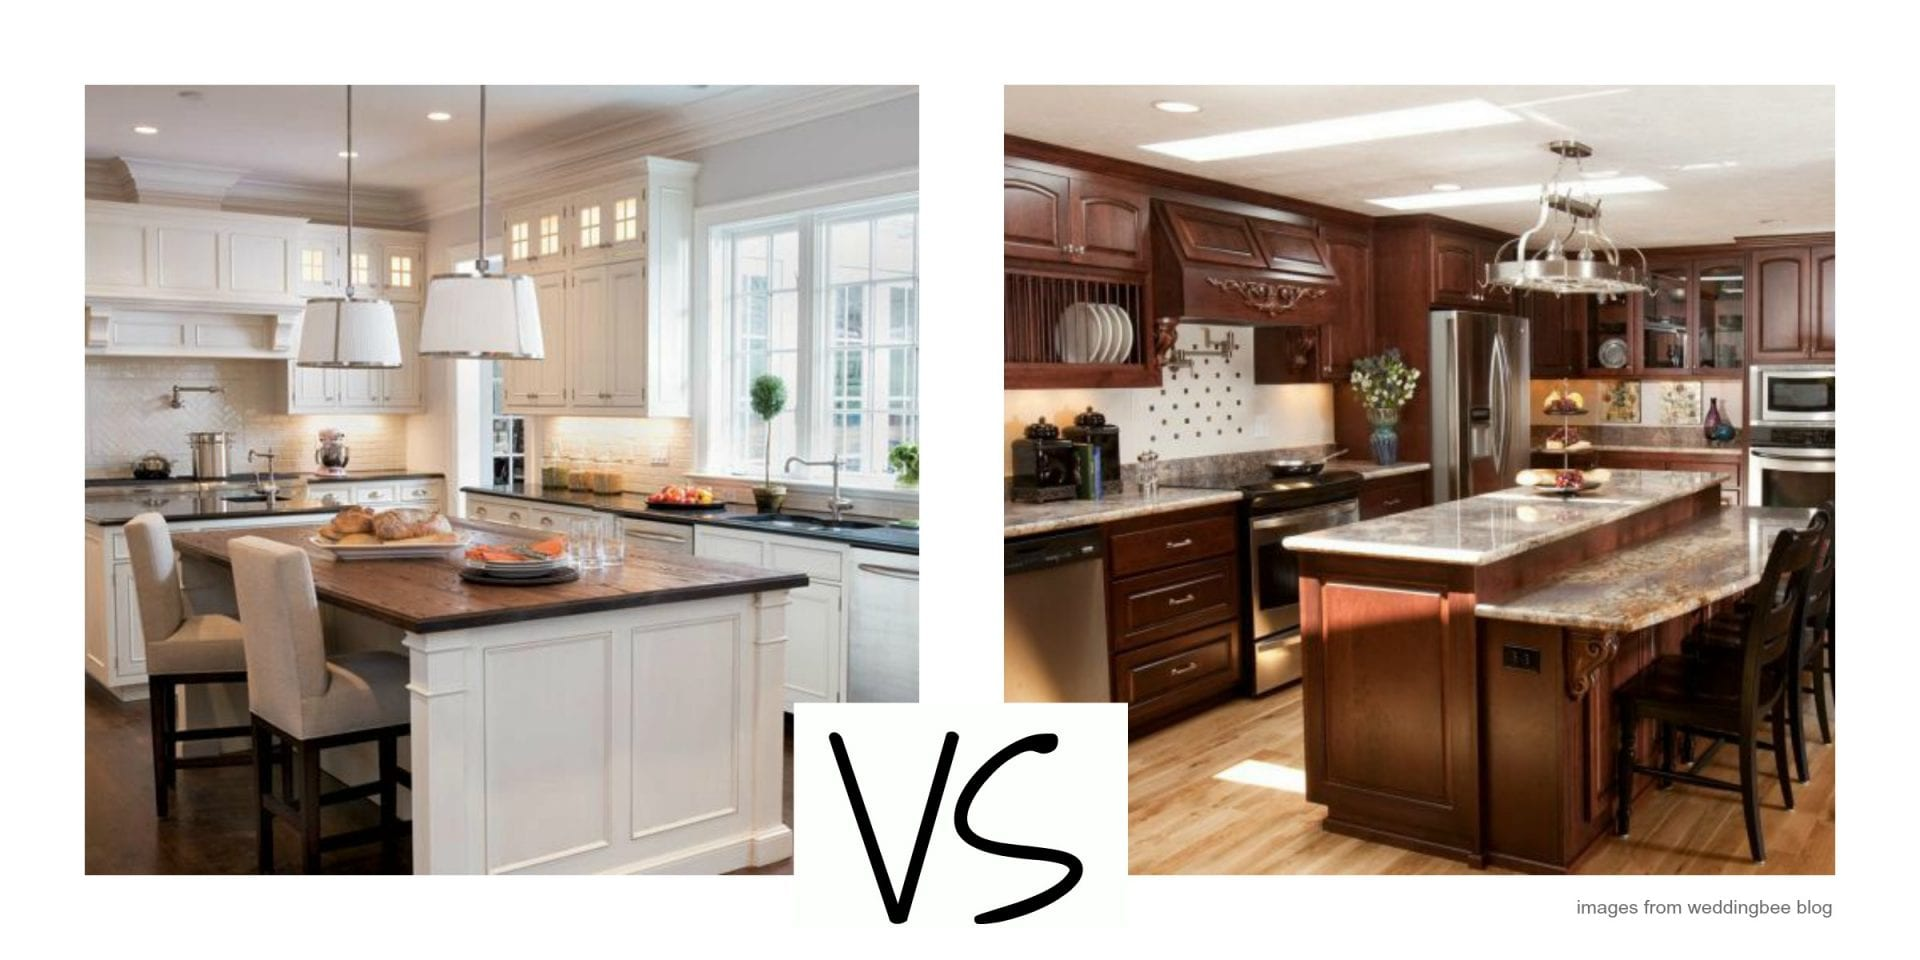 White Versus Wood U2013 Where Are Kitchen Cabinets Headed?   Pamela Sandall  Design